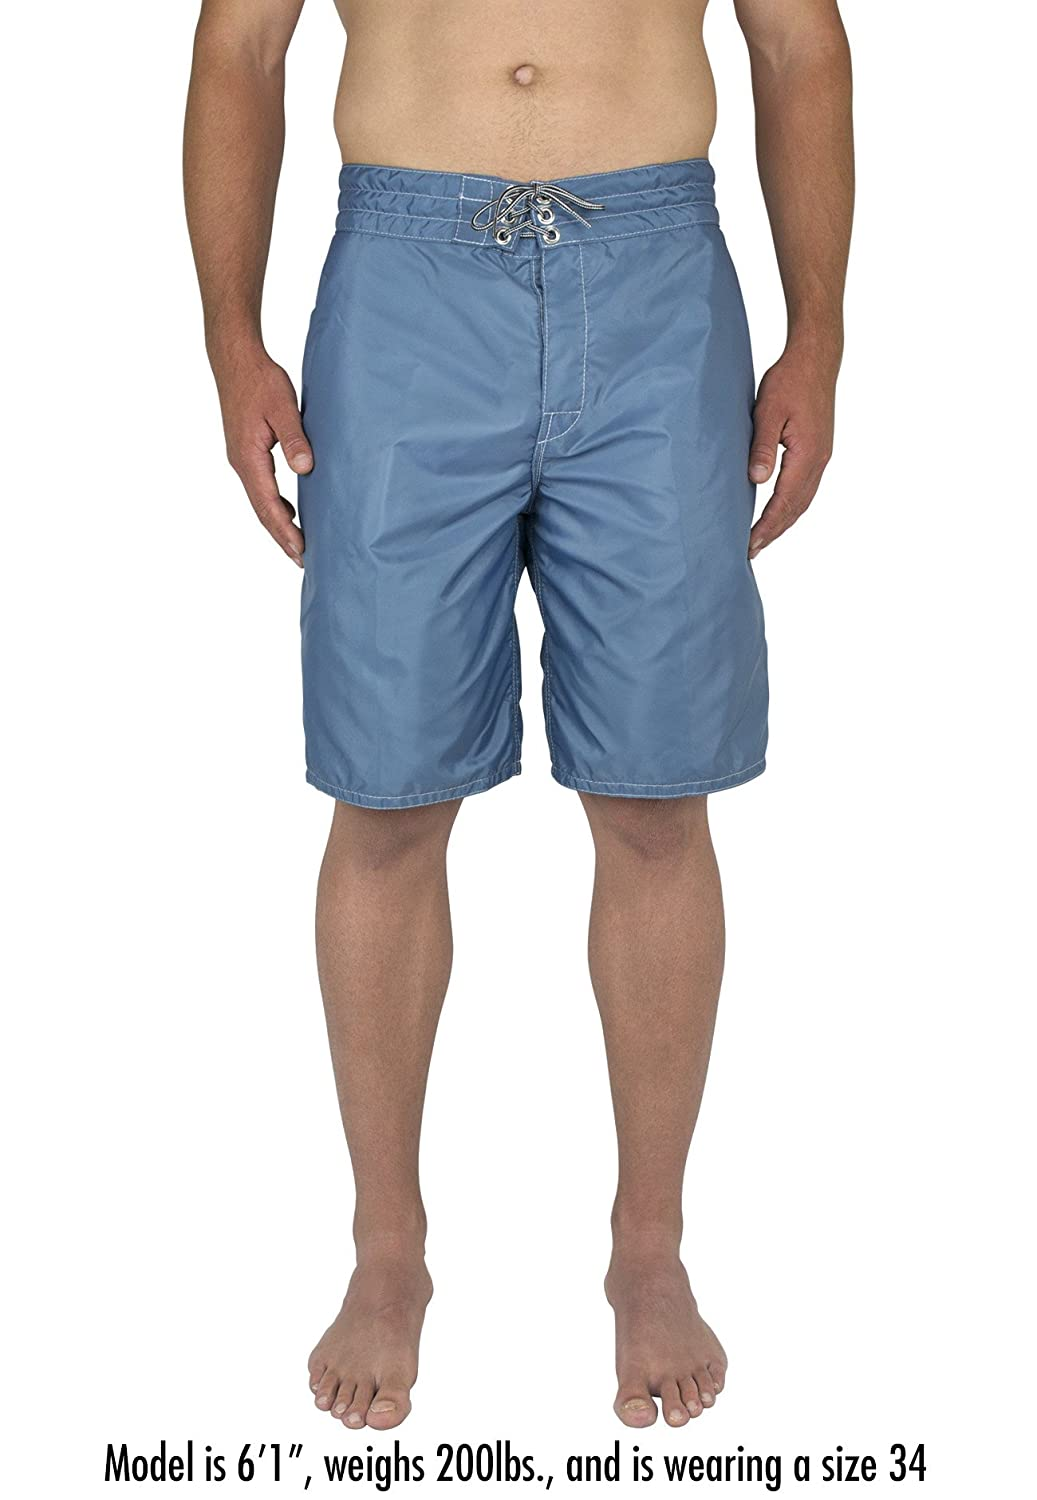 17aef25cf7 Birdwell Men's Board Shorts - Long Length | Amazon.com